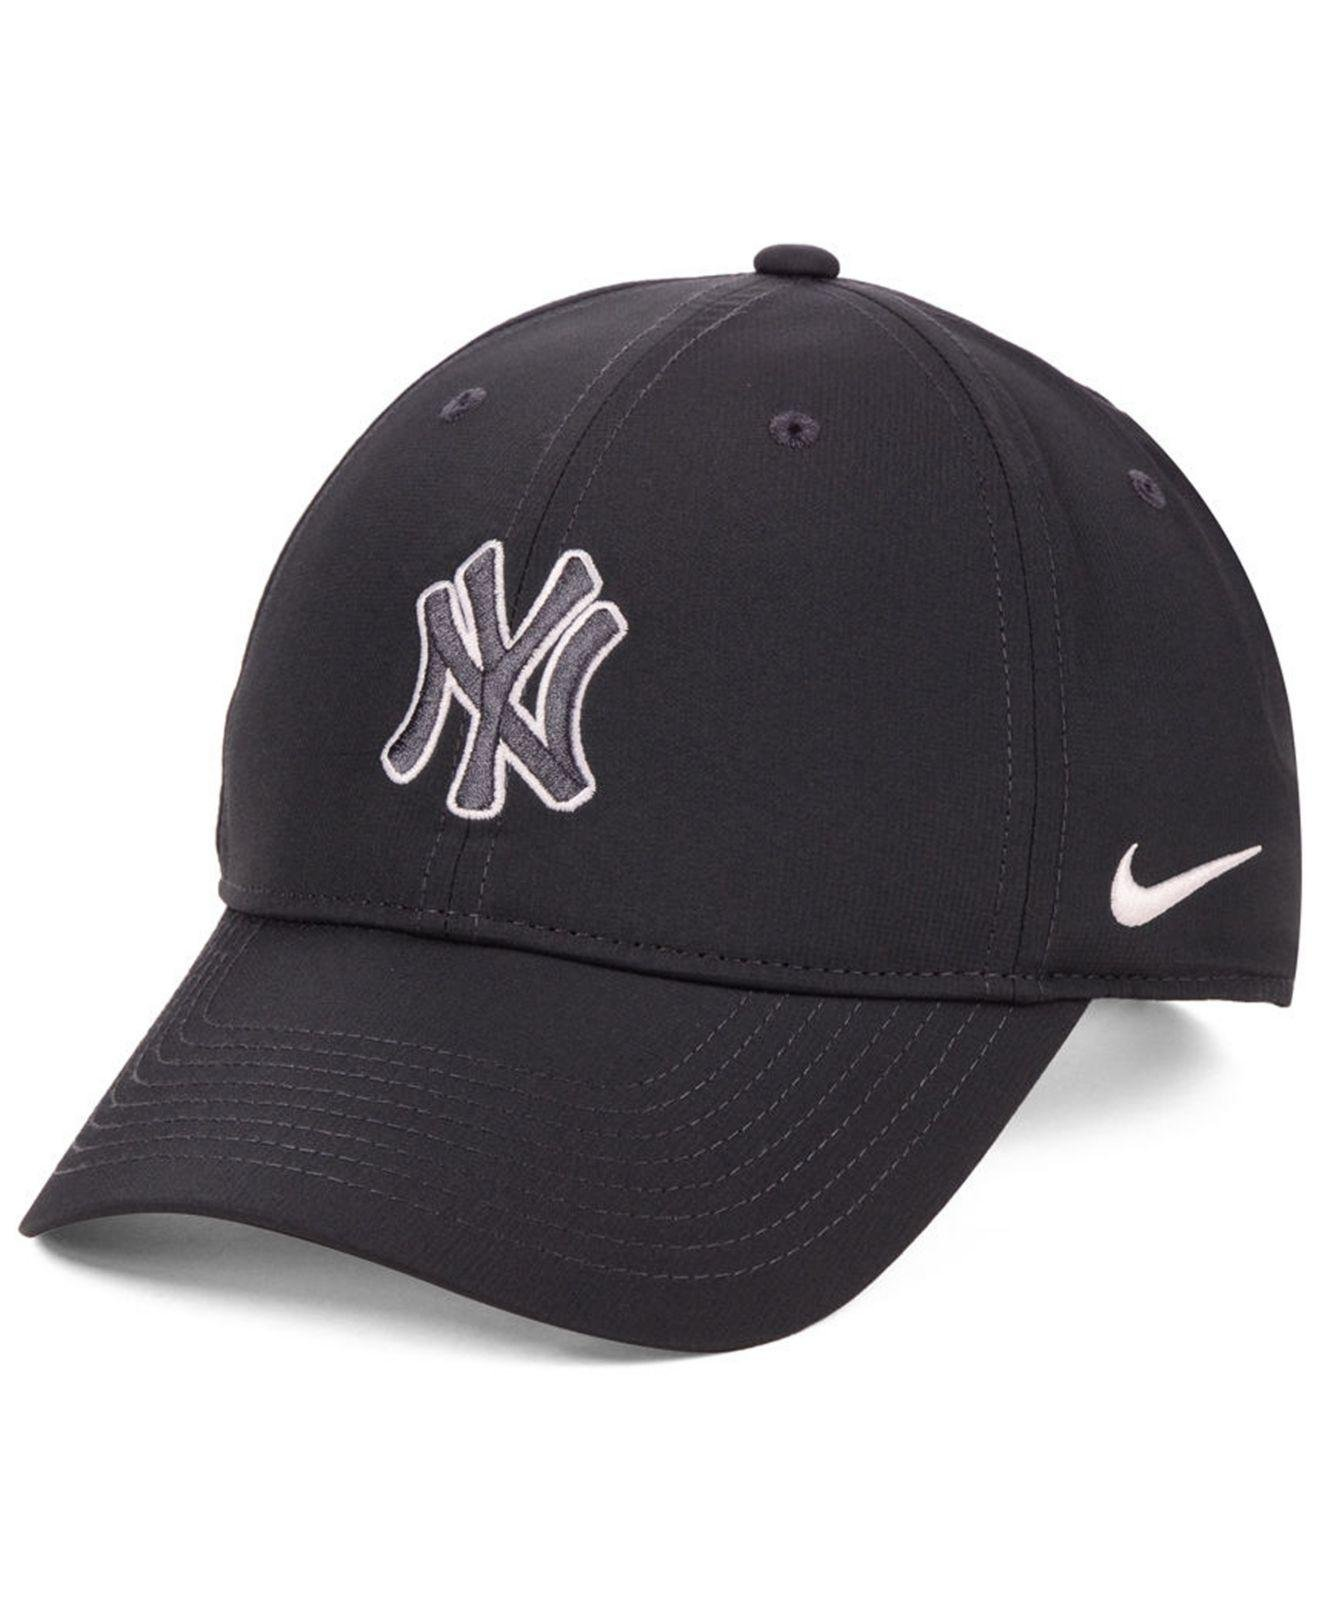 af9e6dc97a1 Lyst - Nike New York Yankees Legacy Performance Strapback Cap in ...